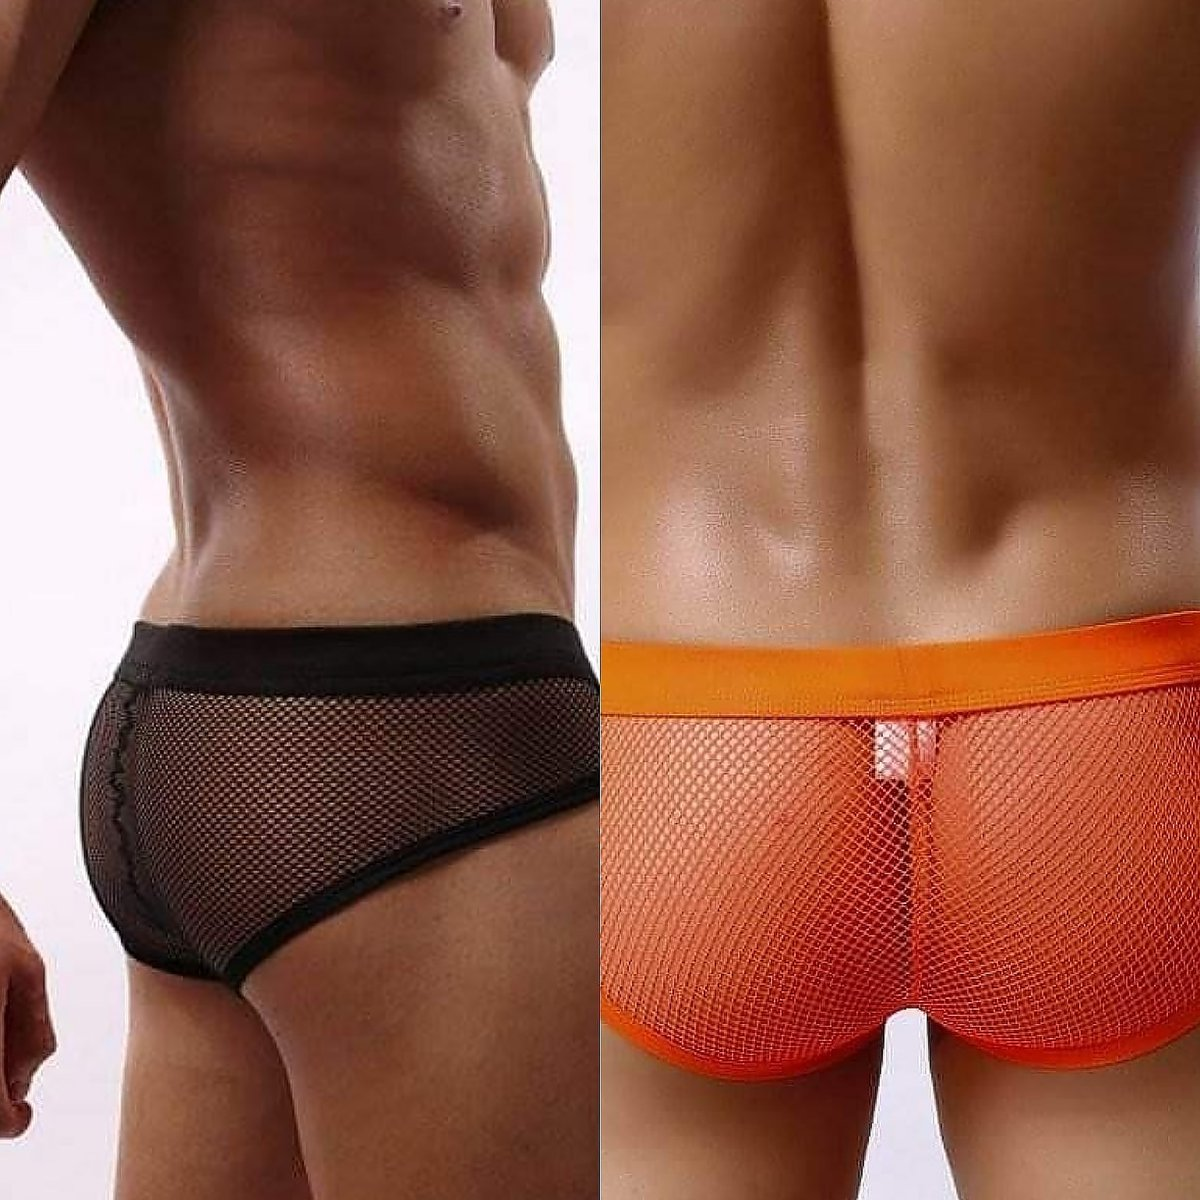 The Ultimate Turn-On Free Shipping Over $20 http://www.dare2bnaughty.com   #thongs #gstring #bikini #Leather #seethru #sexy #gay #pride #gaypride #mensunderwear #gayboy #men #twinkboy #gayjock #jockstrap #maleunderwear #tightywhities #toronto #montreal #dare2bnaughtypic.twitter.com/wyXXwm56oA